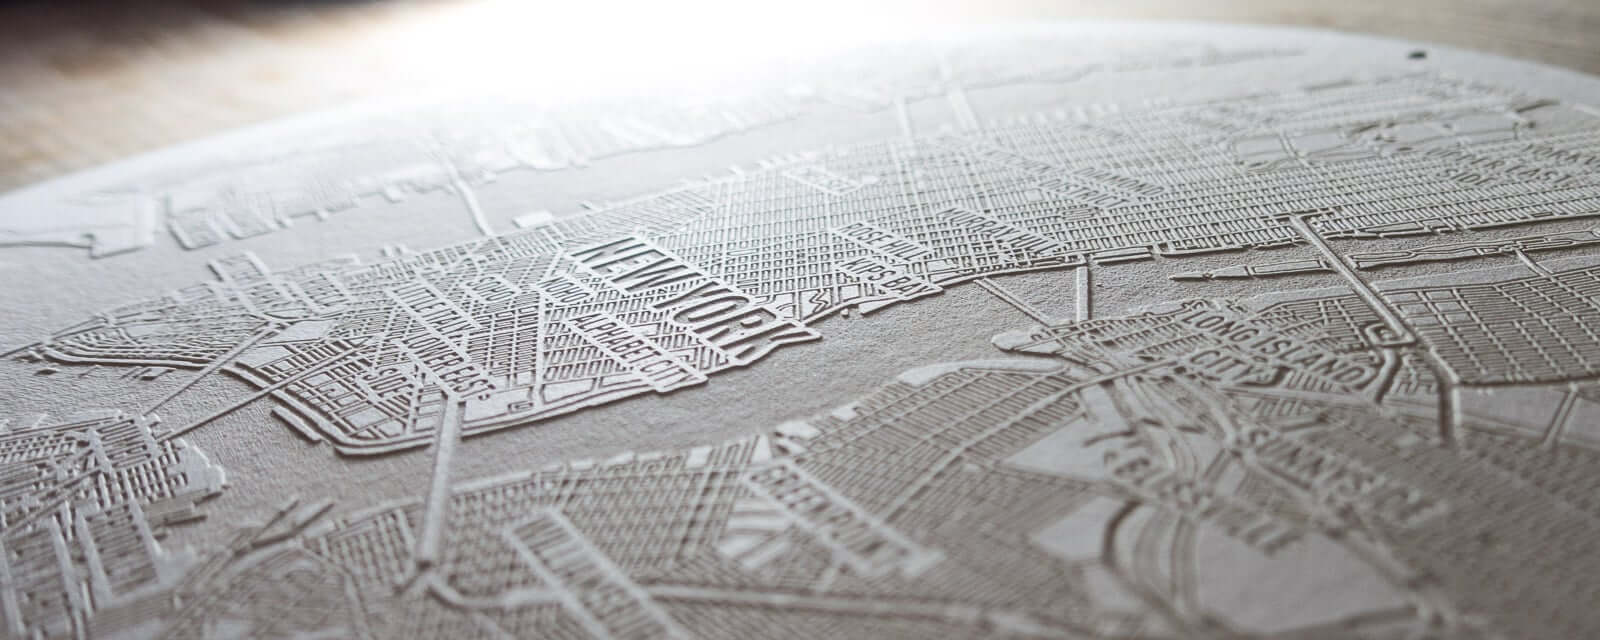 Laser Paper engraving of the map of New York City.